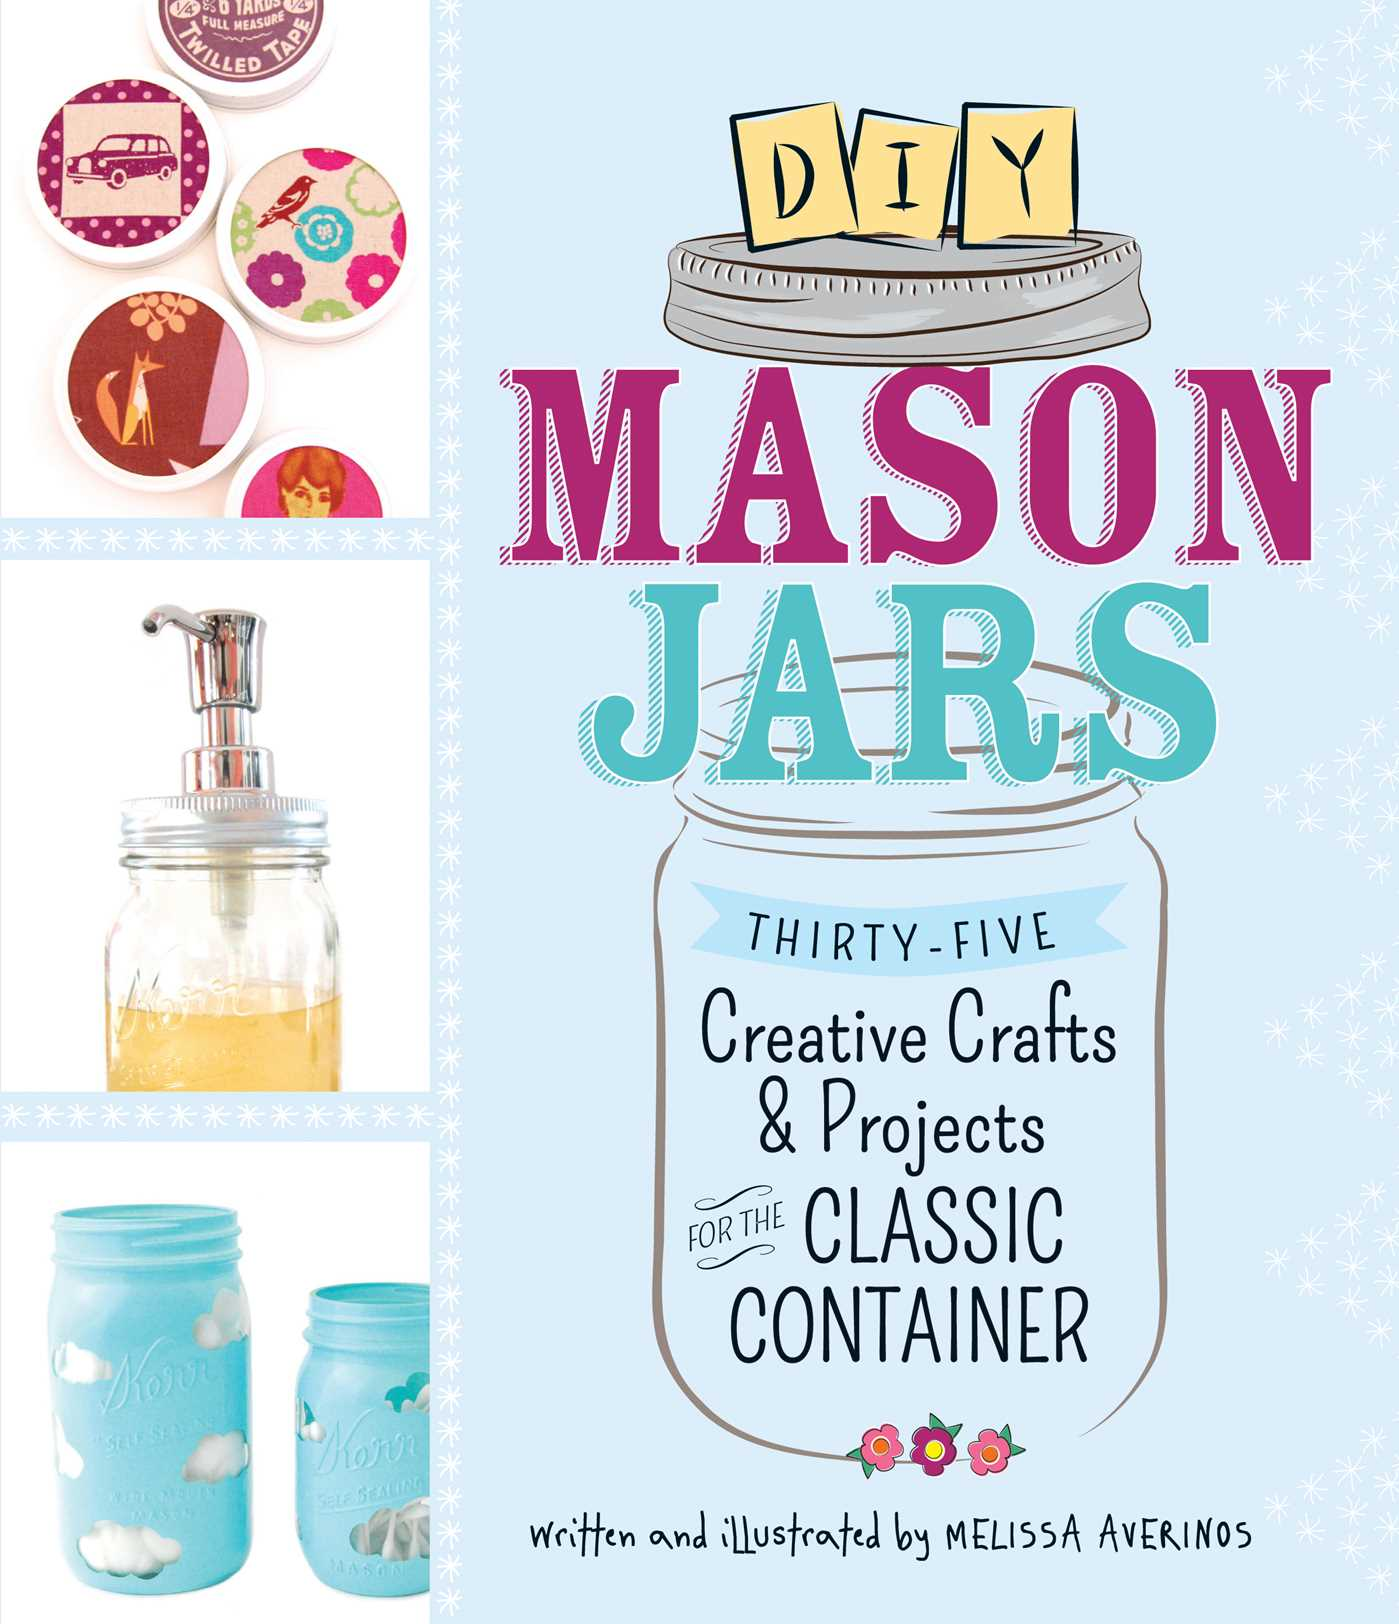 DIY Mason Jars Thirty-Five Creative Crafts and Projects for the Classic Container